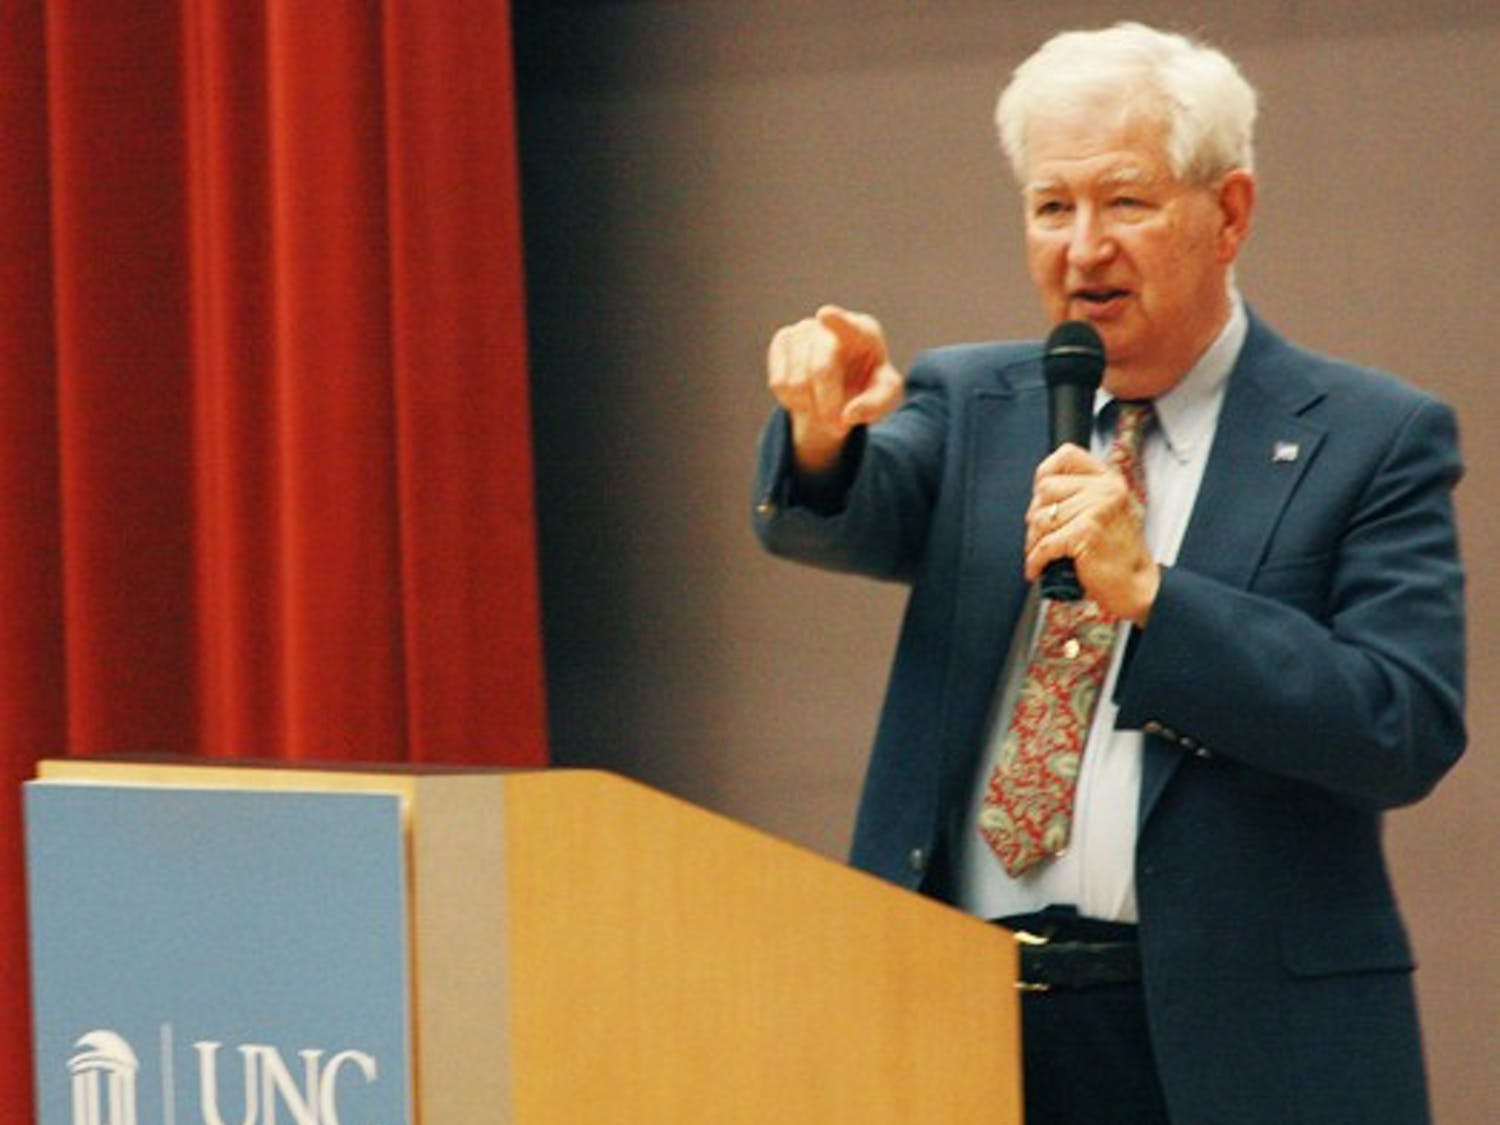 """Charles Green, the co-chair of the West Triangle Chapter of the United Nation introduces Tuesday night's film, """"Fragile States and Global Consequences."""" The evening was sponsored in part by the student United Nations Organization at UNC. The event includes a movie showing on the dangers of already unstable nations in jeopardy of failure including Haiti, the Republic of Congo, Bosnia and East Timor."""